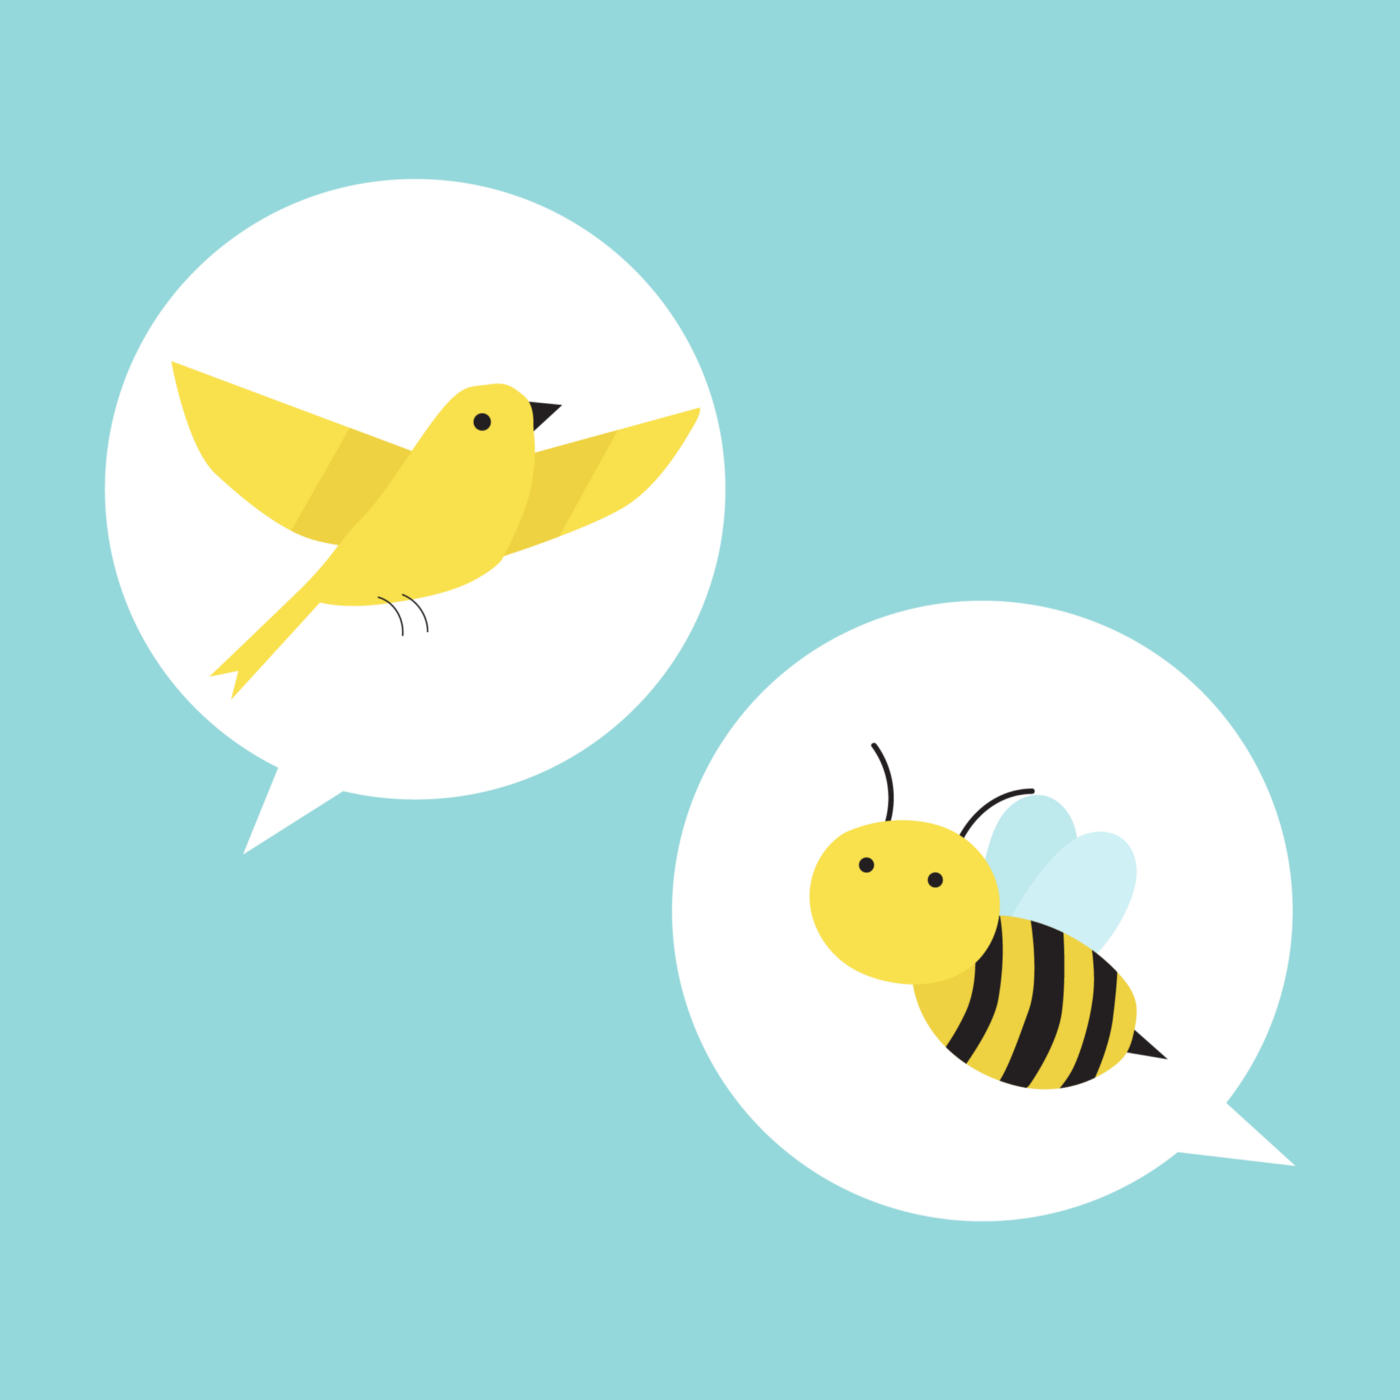 two word bubbles on a blue background, one with a bird and one with a bee